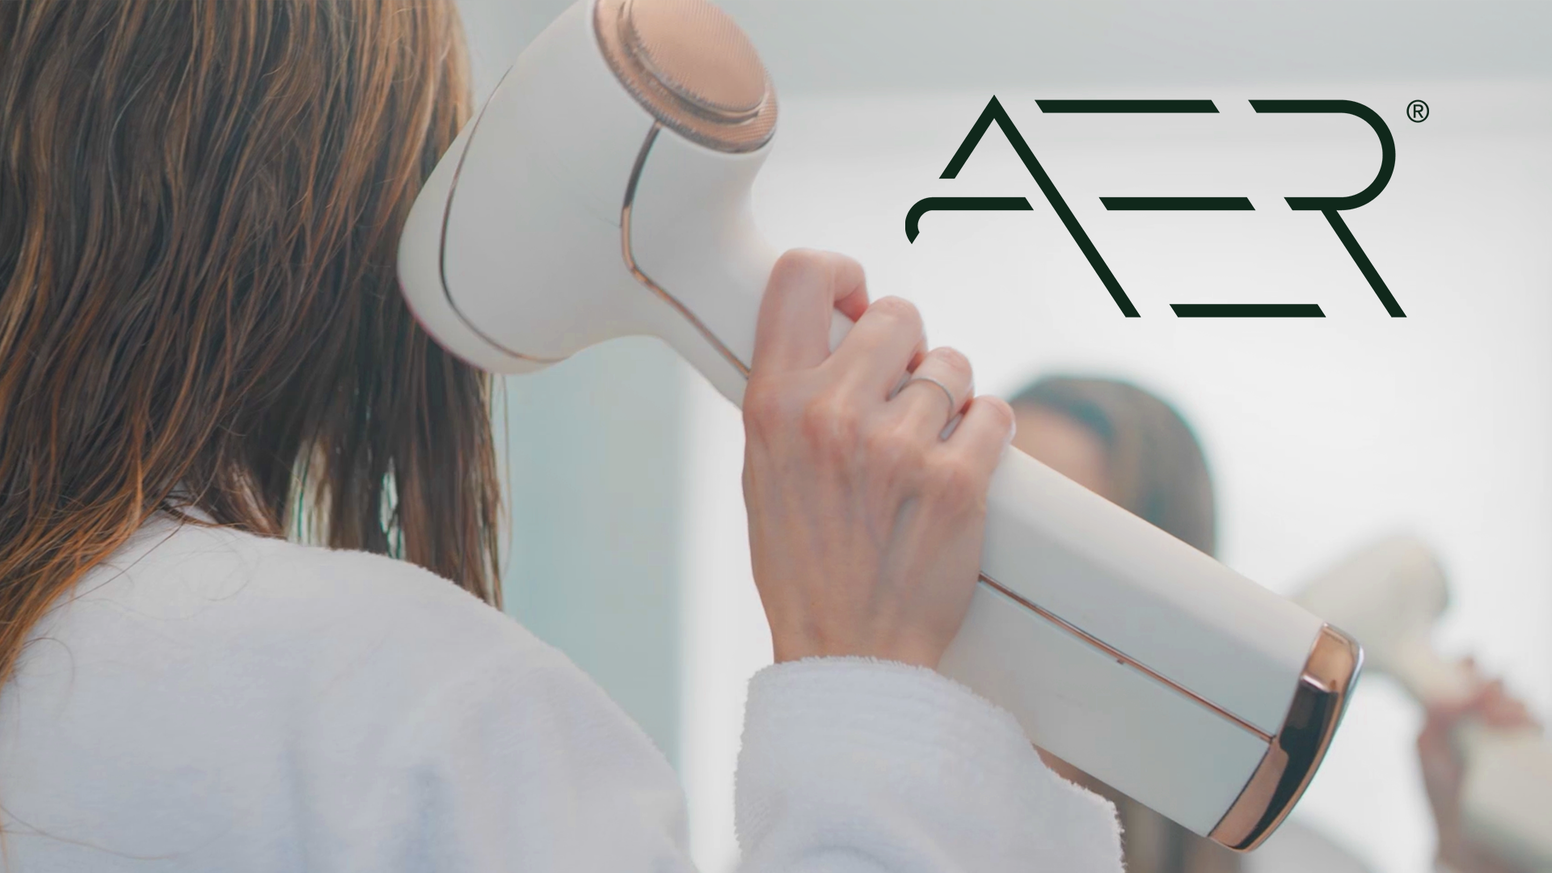 The first high performance, artificially intelligent, cordless hair dryer.